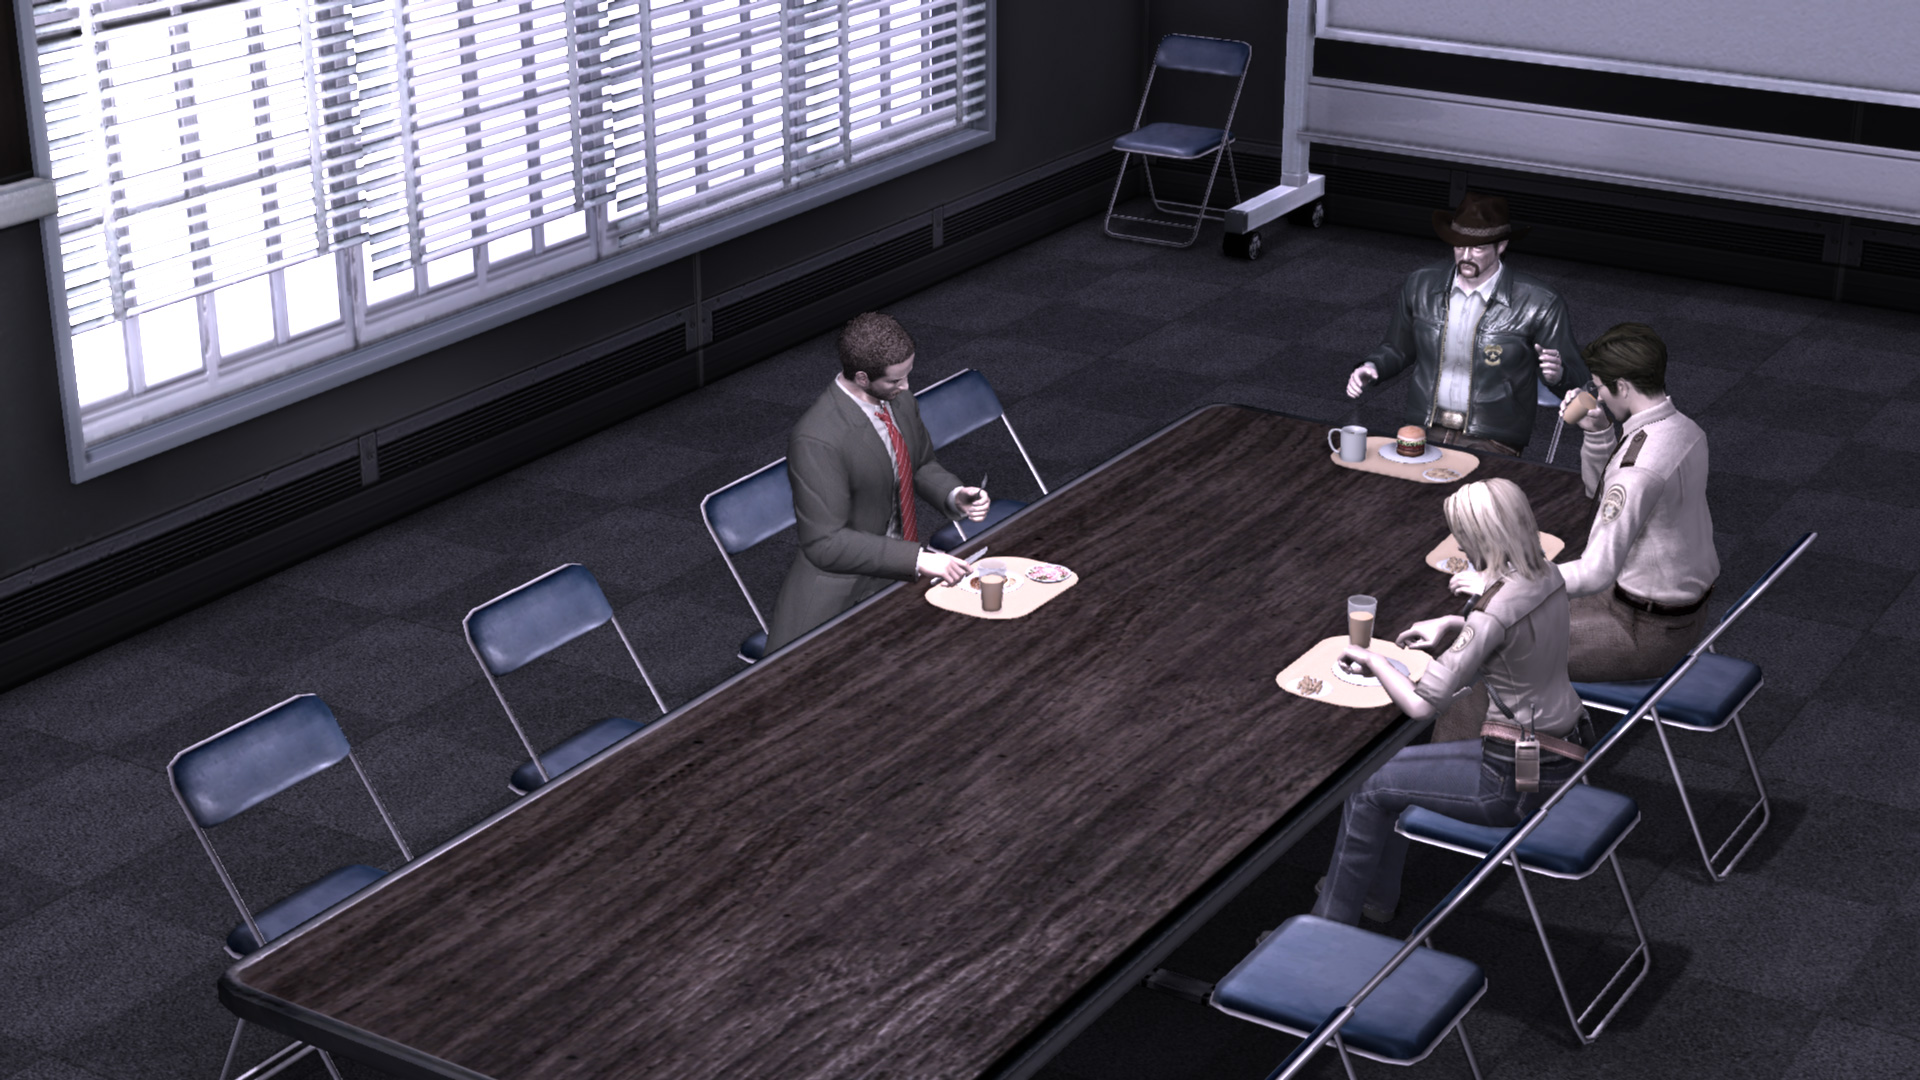 jim sterling deadly premonition